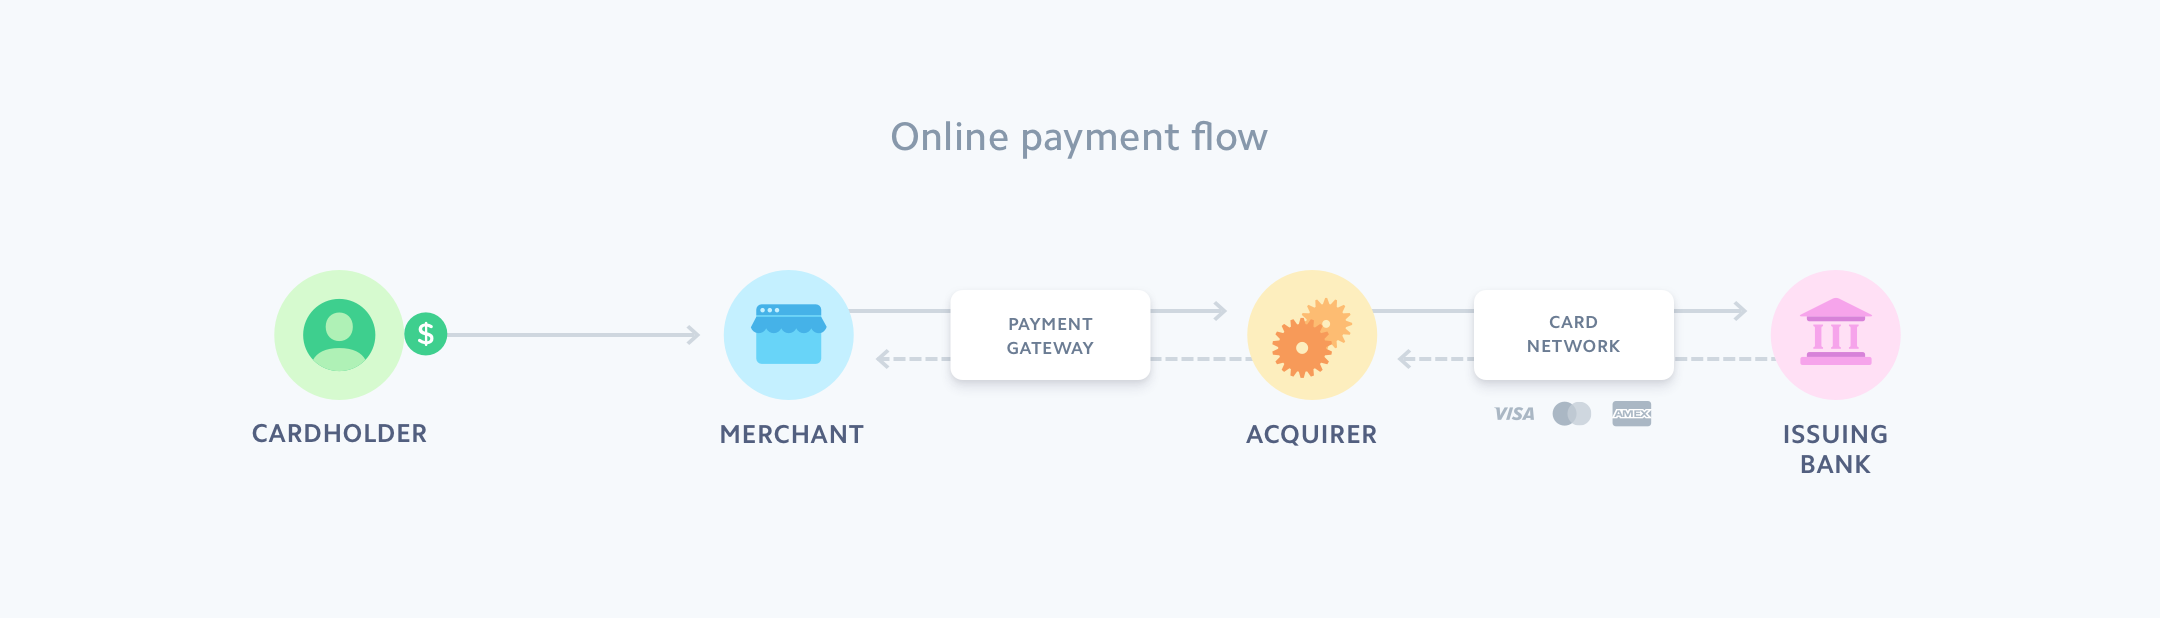 Online payments flow